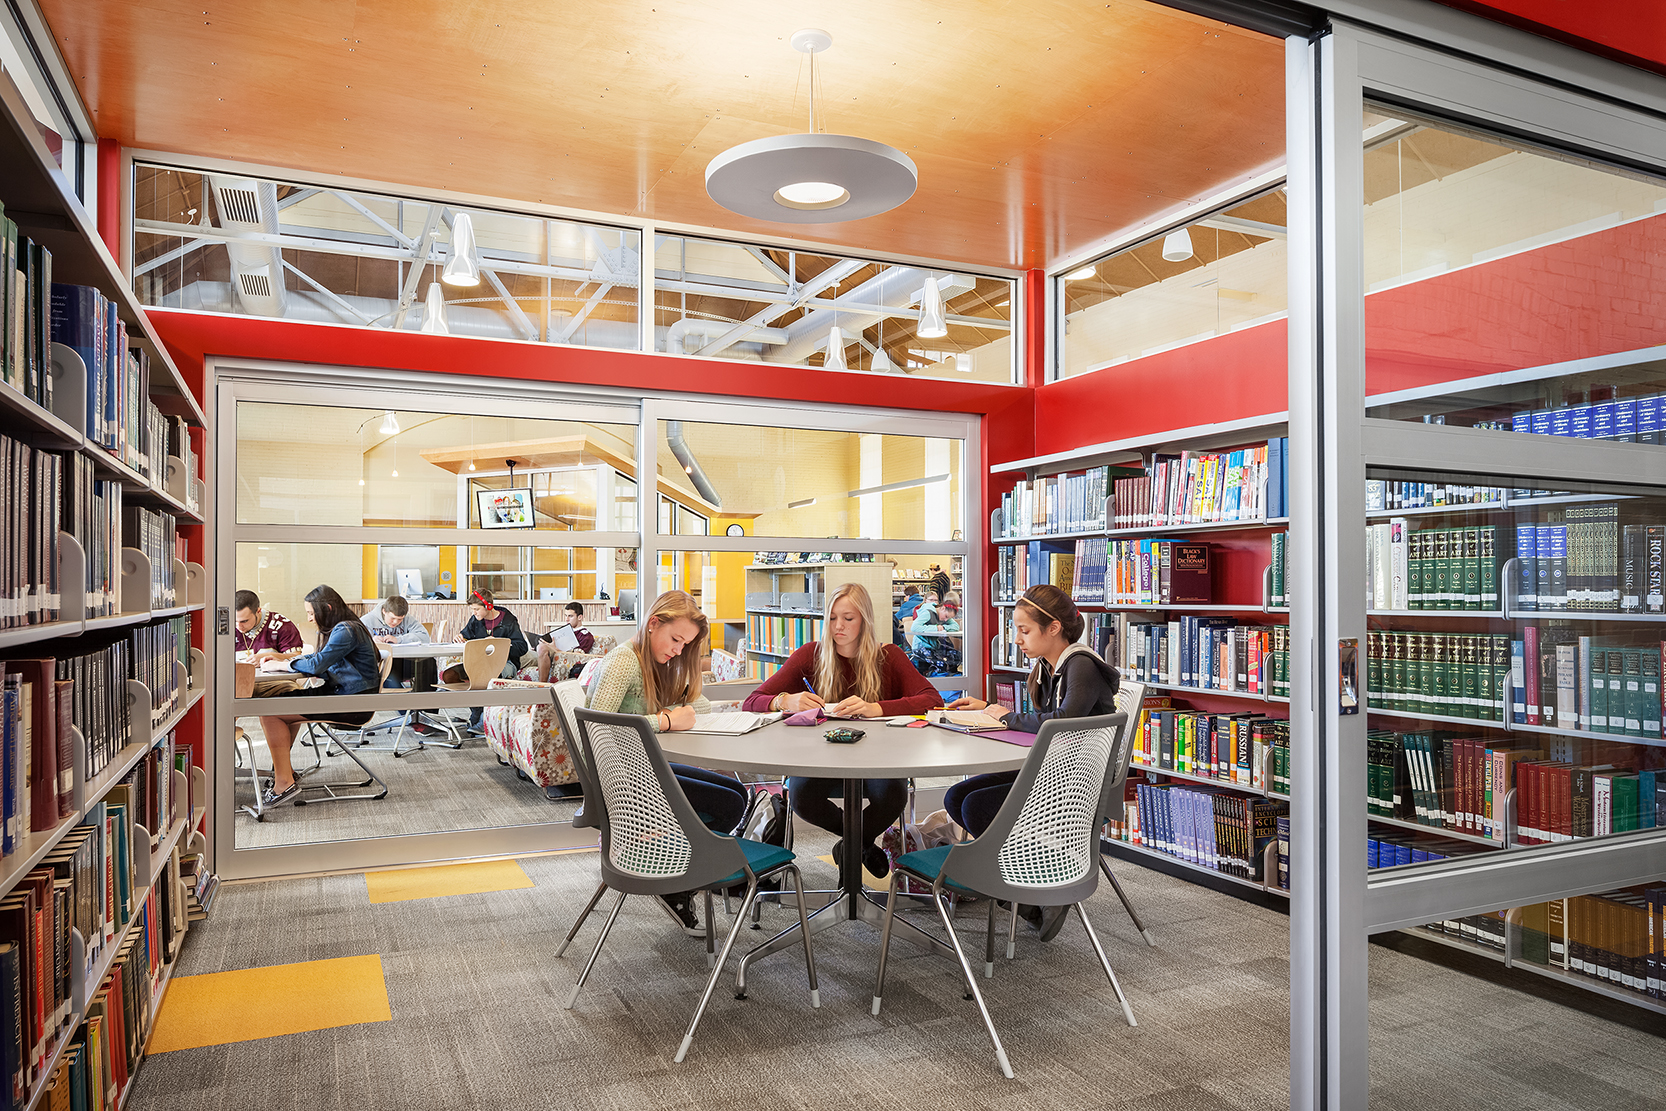 Freestanding study and conference rooms in the learning commons delineate quiet research spaces from noisier collaboration areas.